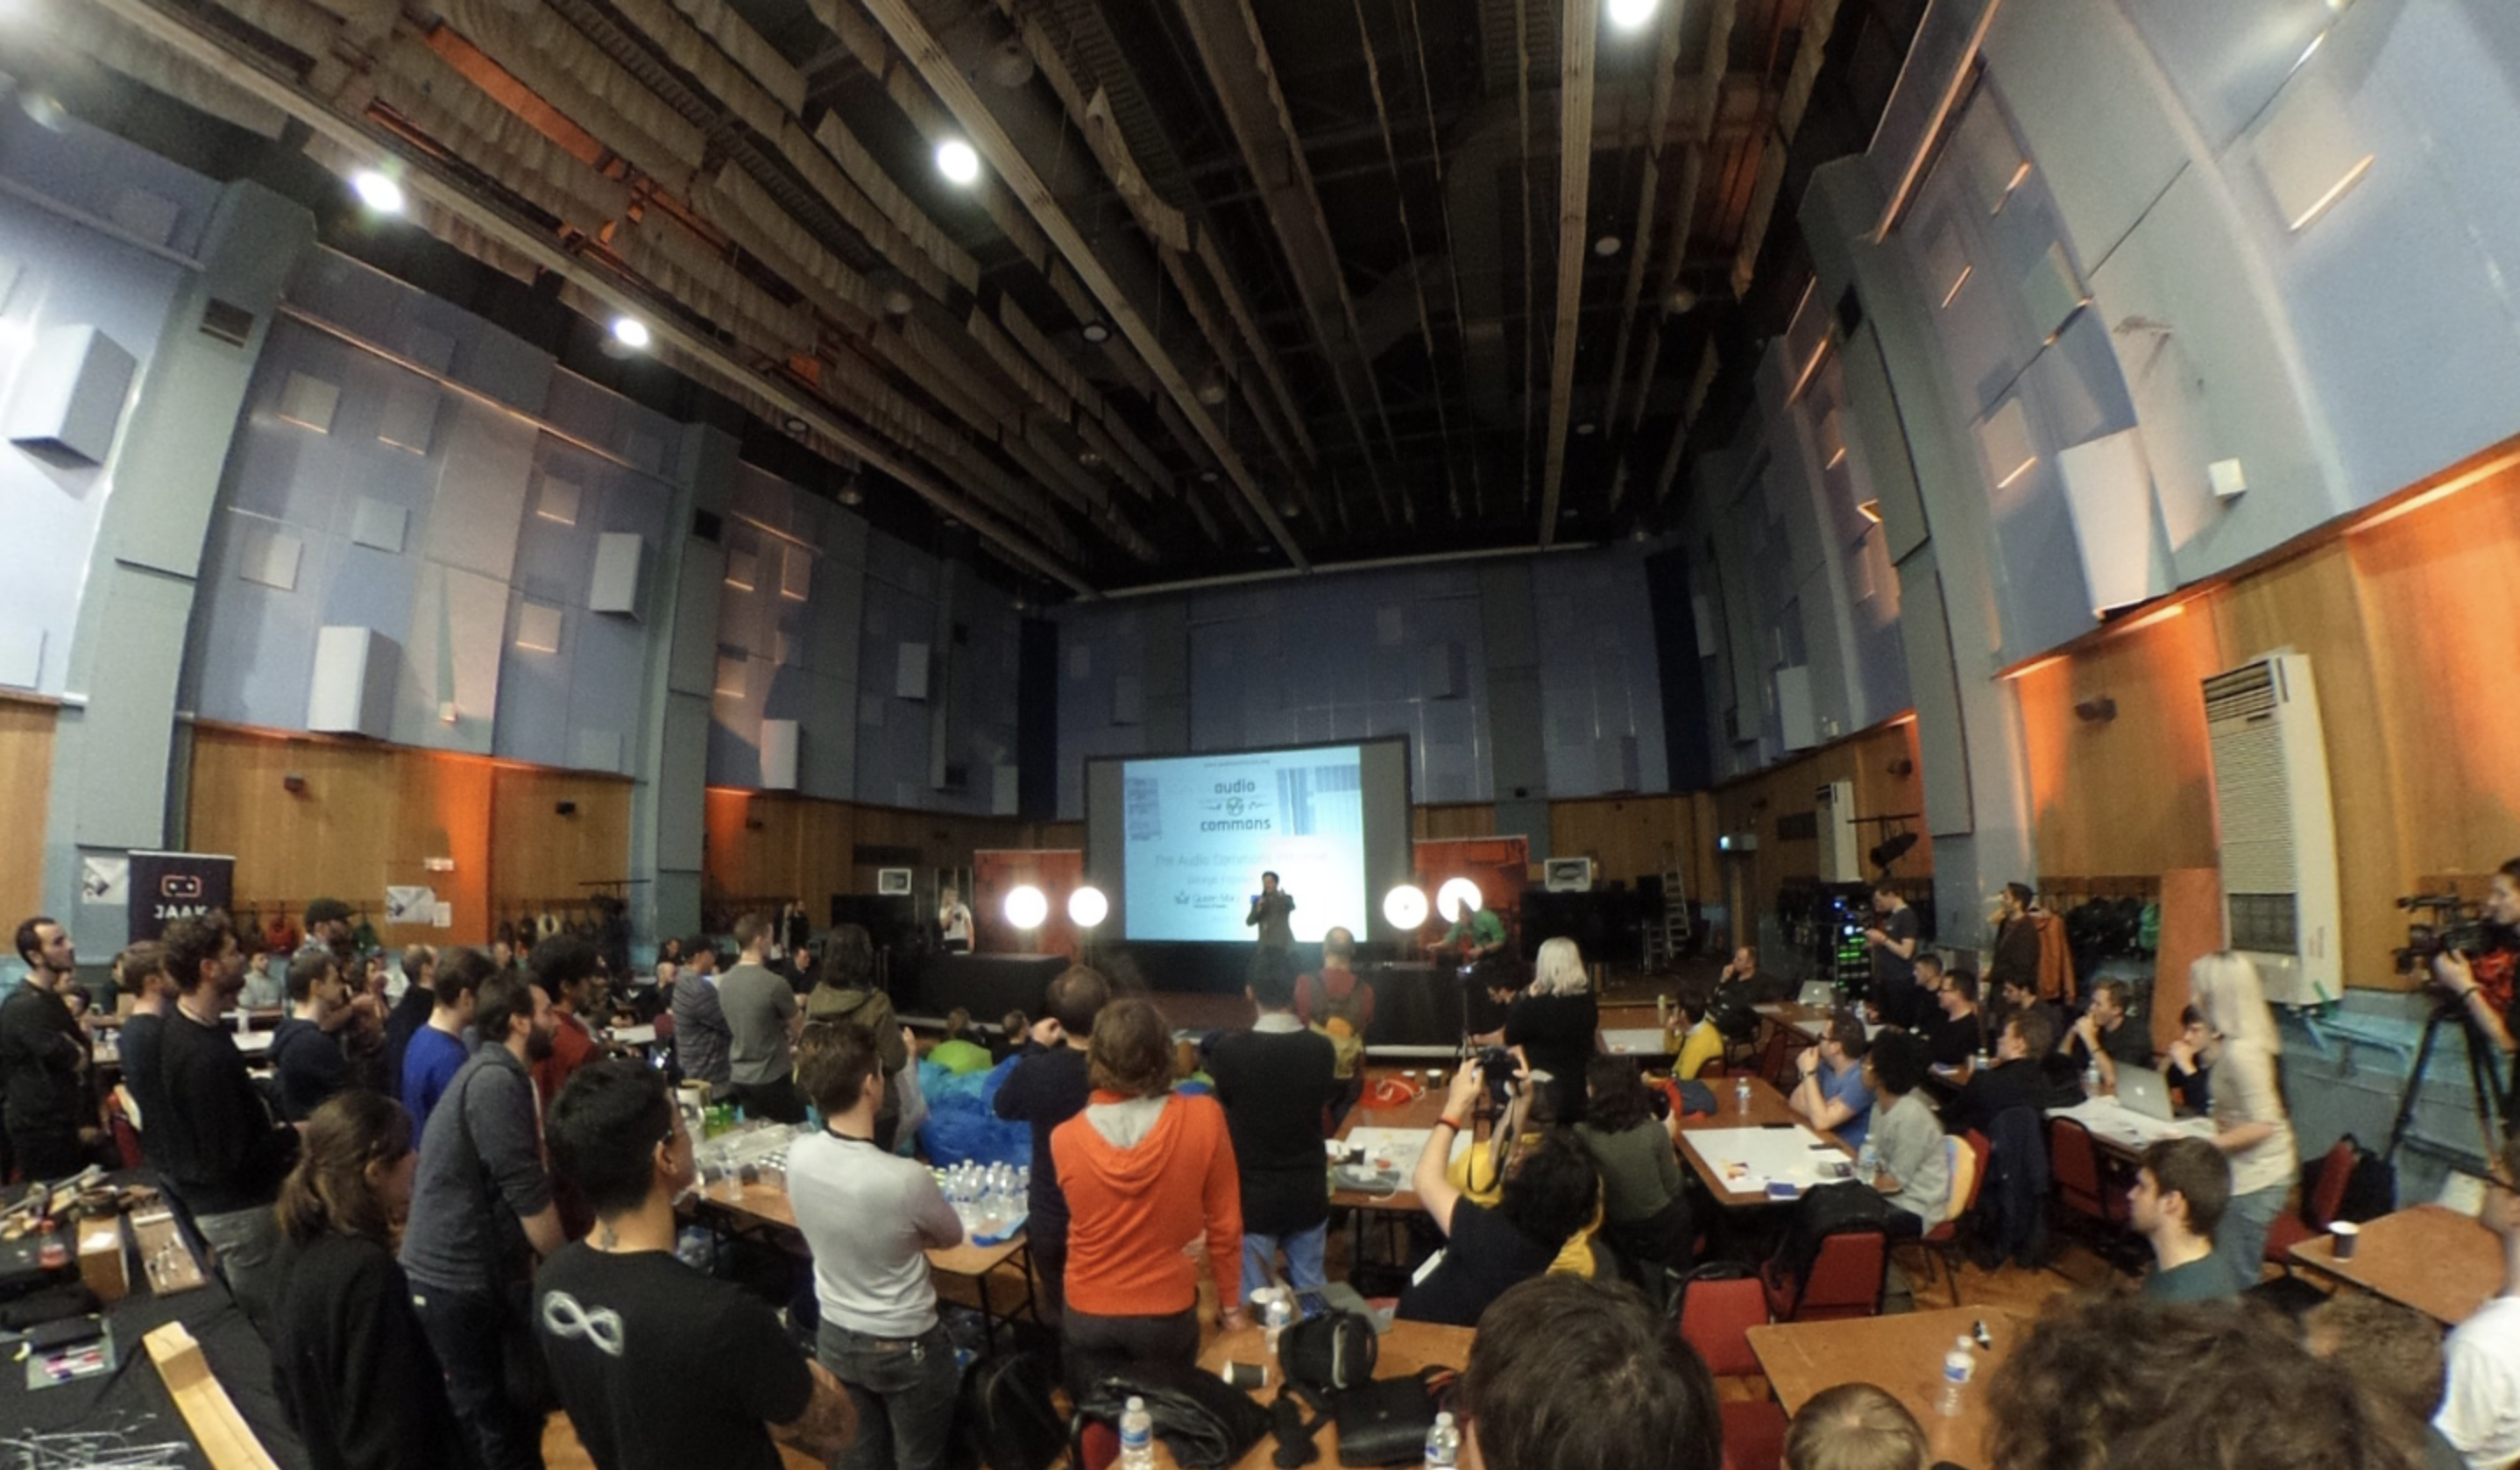 The Audio Commons presentation captured with a 360 camera.